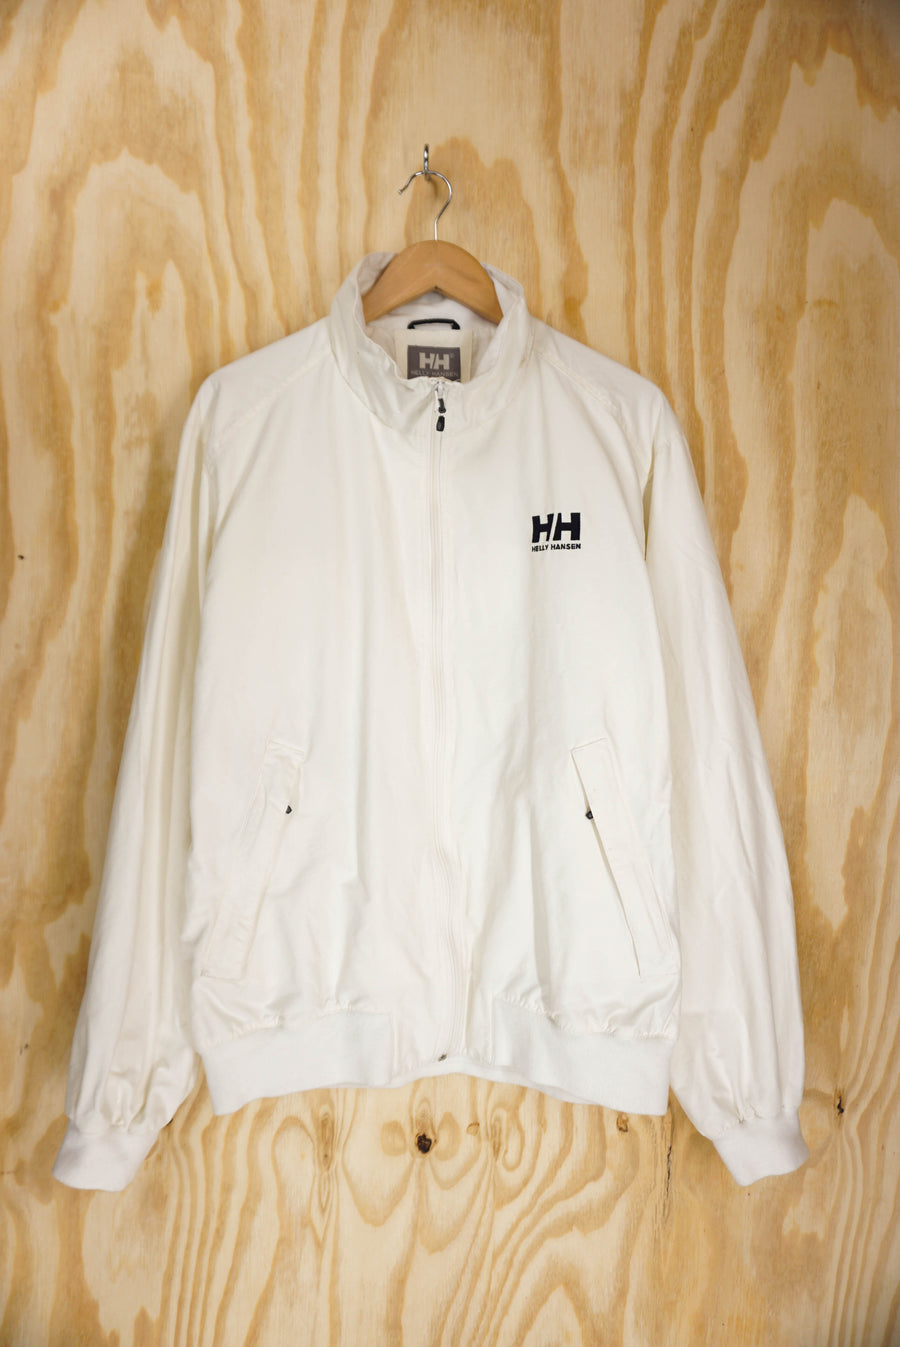 Helly Hansen sport jacket - size XL